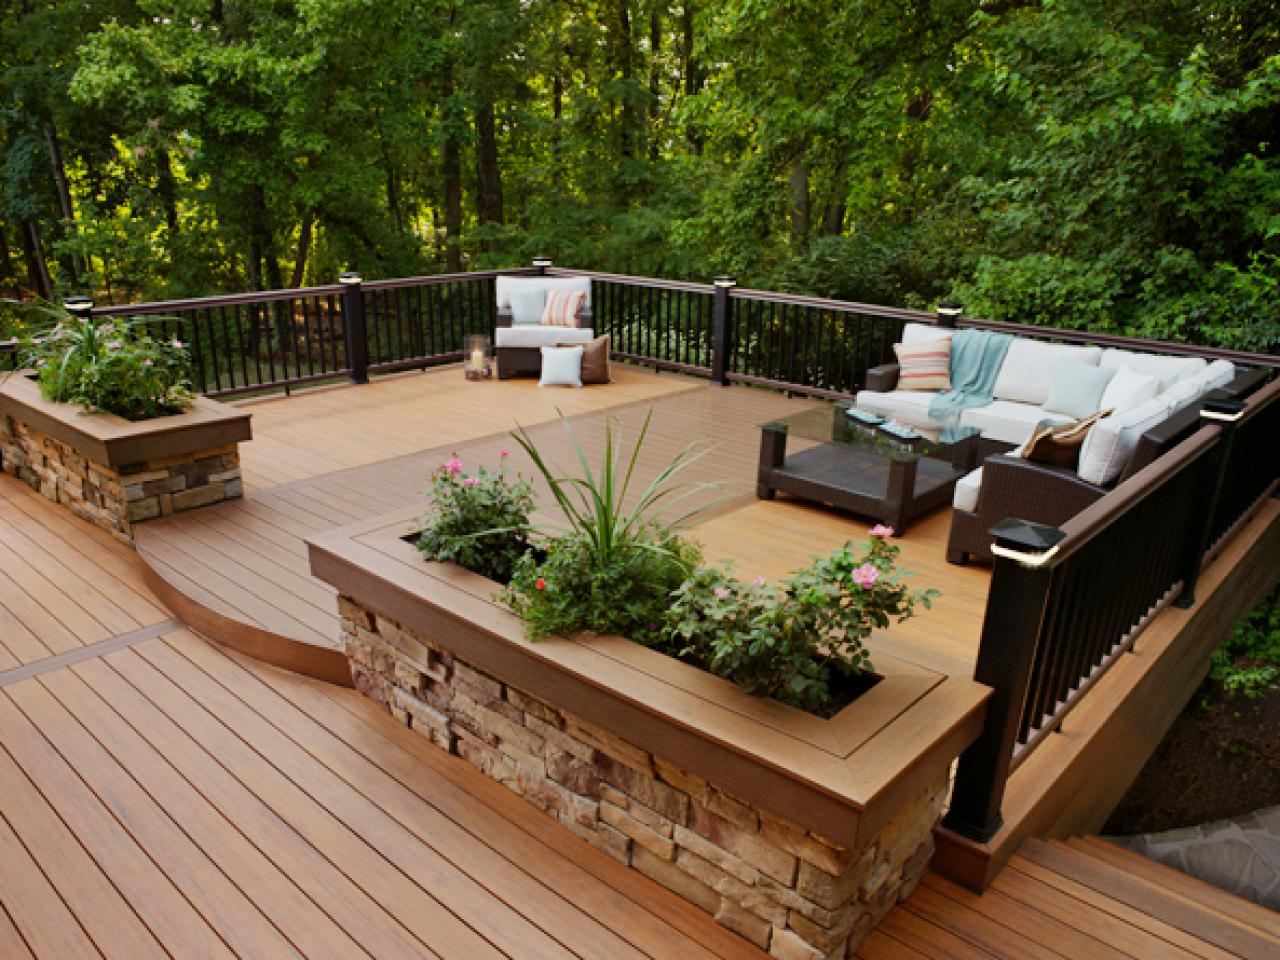 Deck designs ideas pictures hgtv for Garden decking designs uk